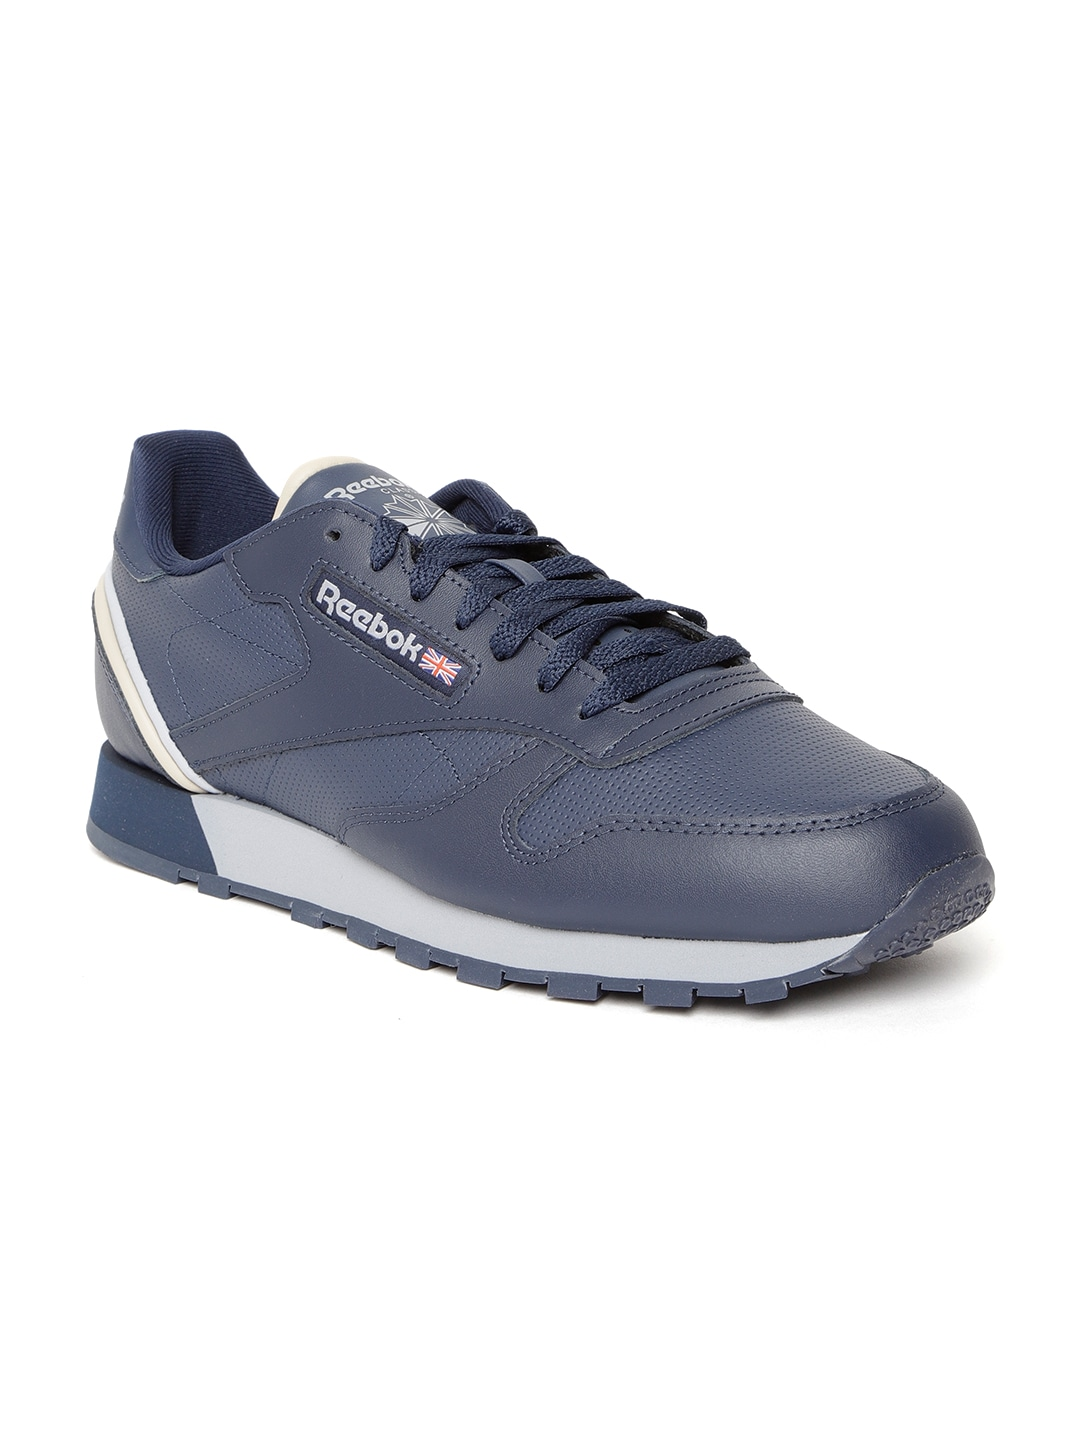 771c3c97d8f3 Reebok Leather Shoes - Buy Reebok Leather Shoes online in India